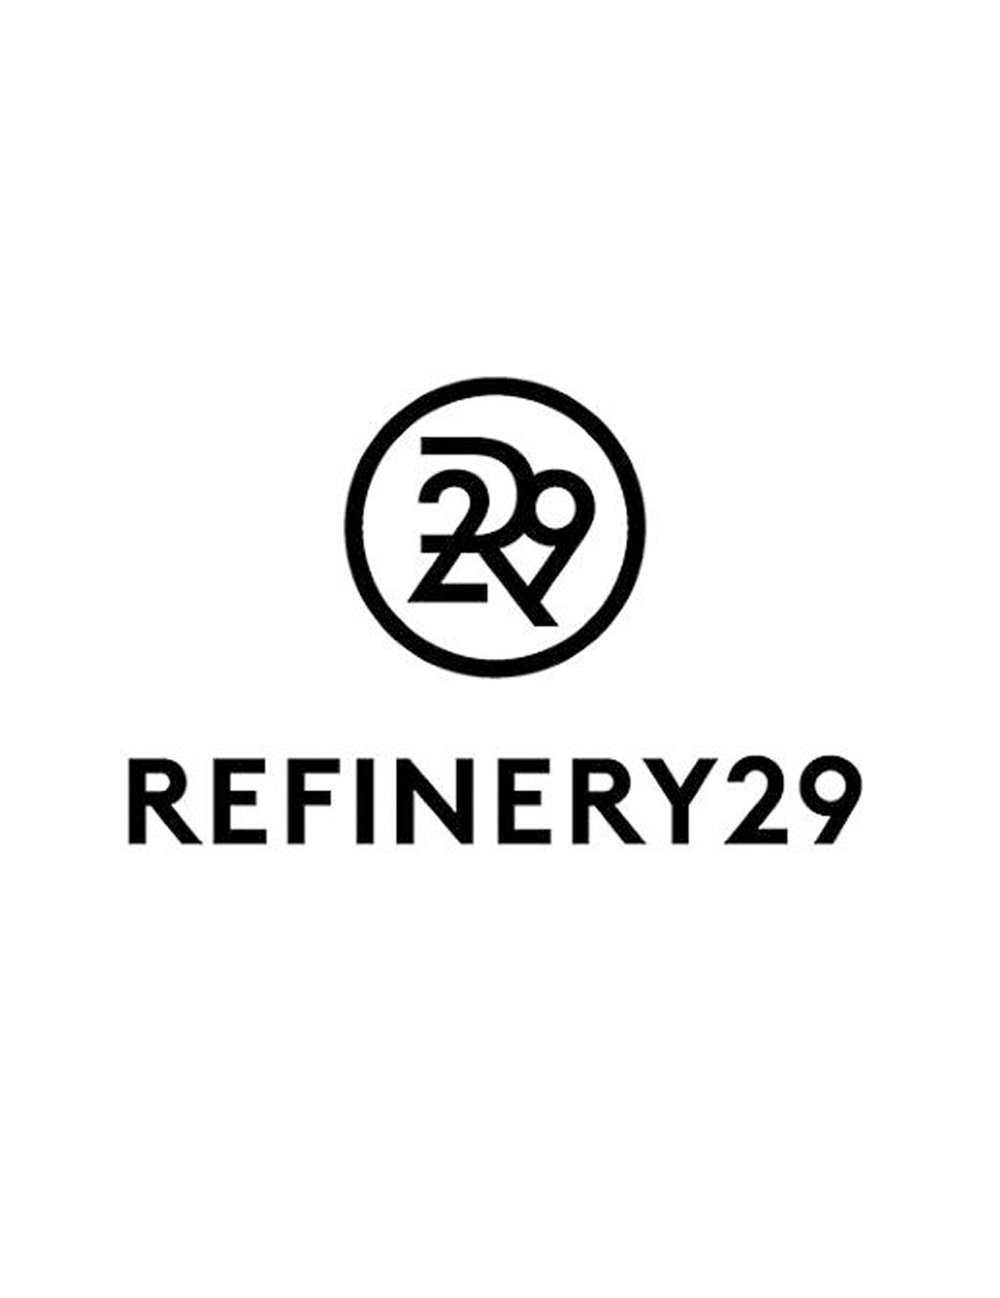 553_refinery-29-logo-website.jpg